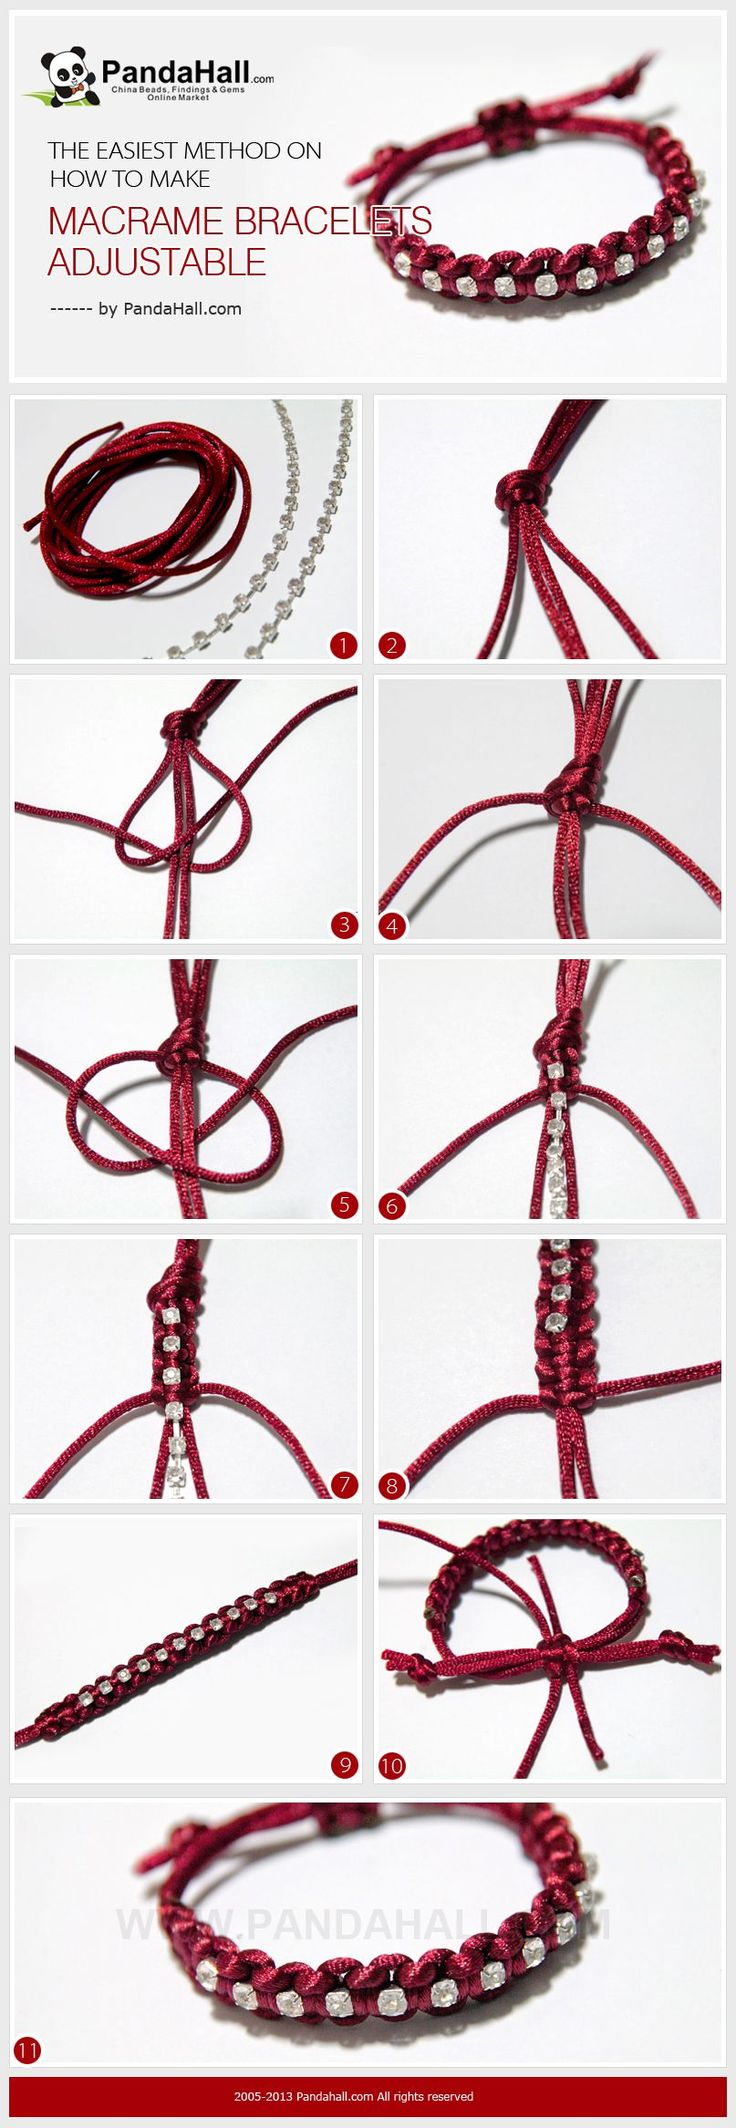 It's another bracelet making tutorial, at meanwhile, I'll emphasize the subject about how to make macrame bracelets adjustable in simple way again. Especially for those who learn to knot for just several days, I recommend this!